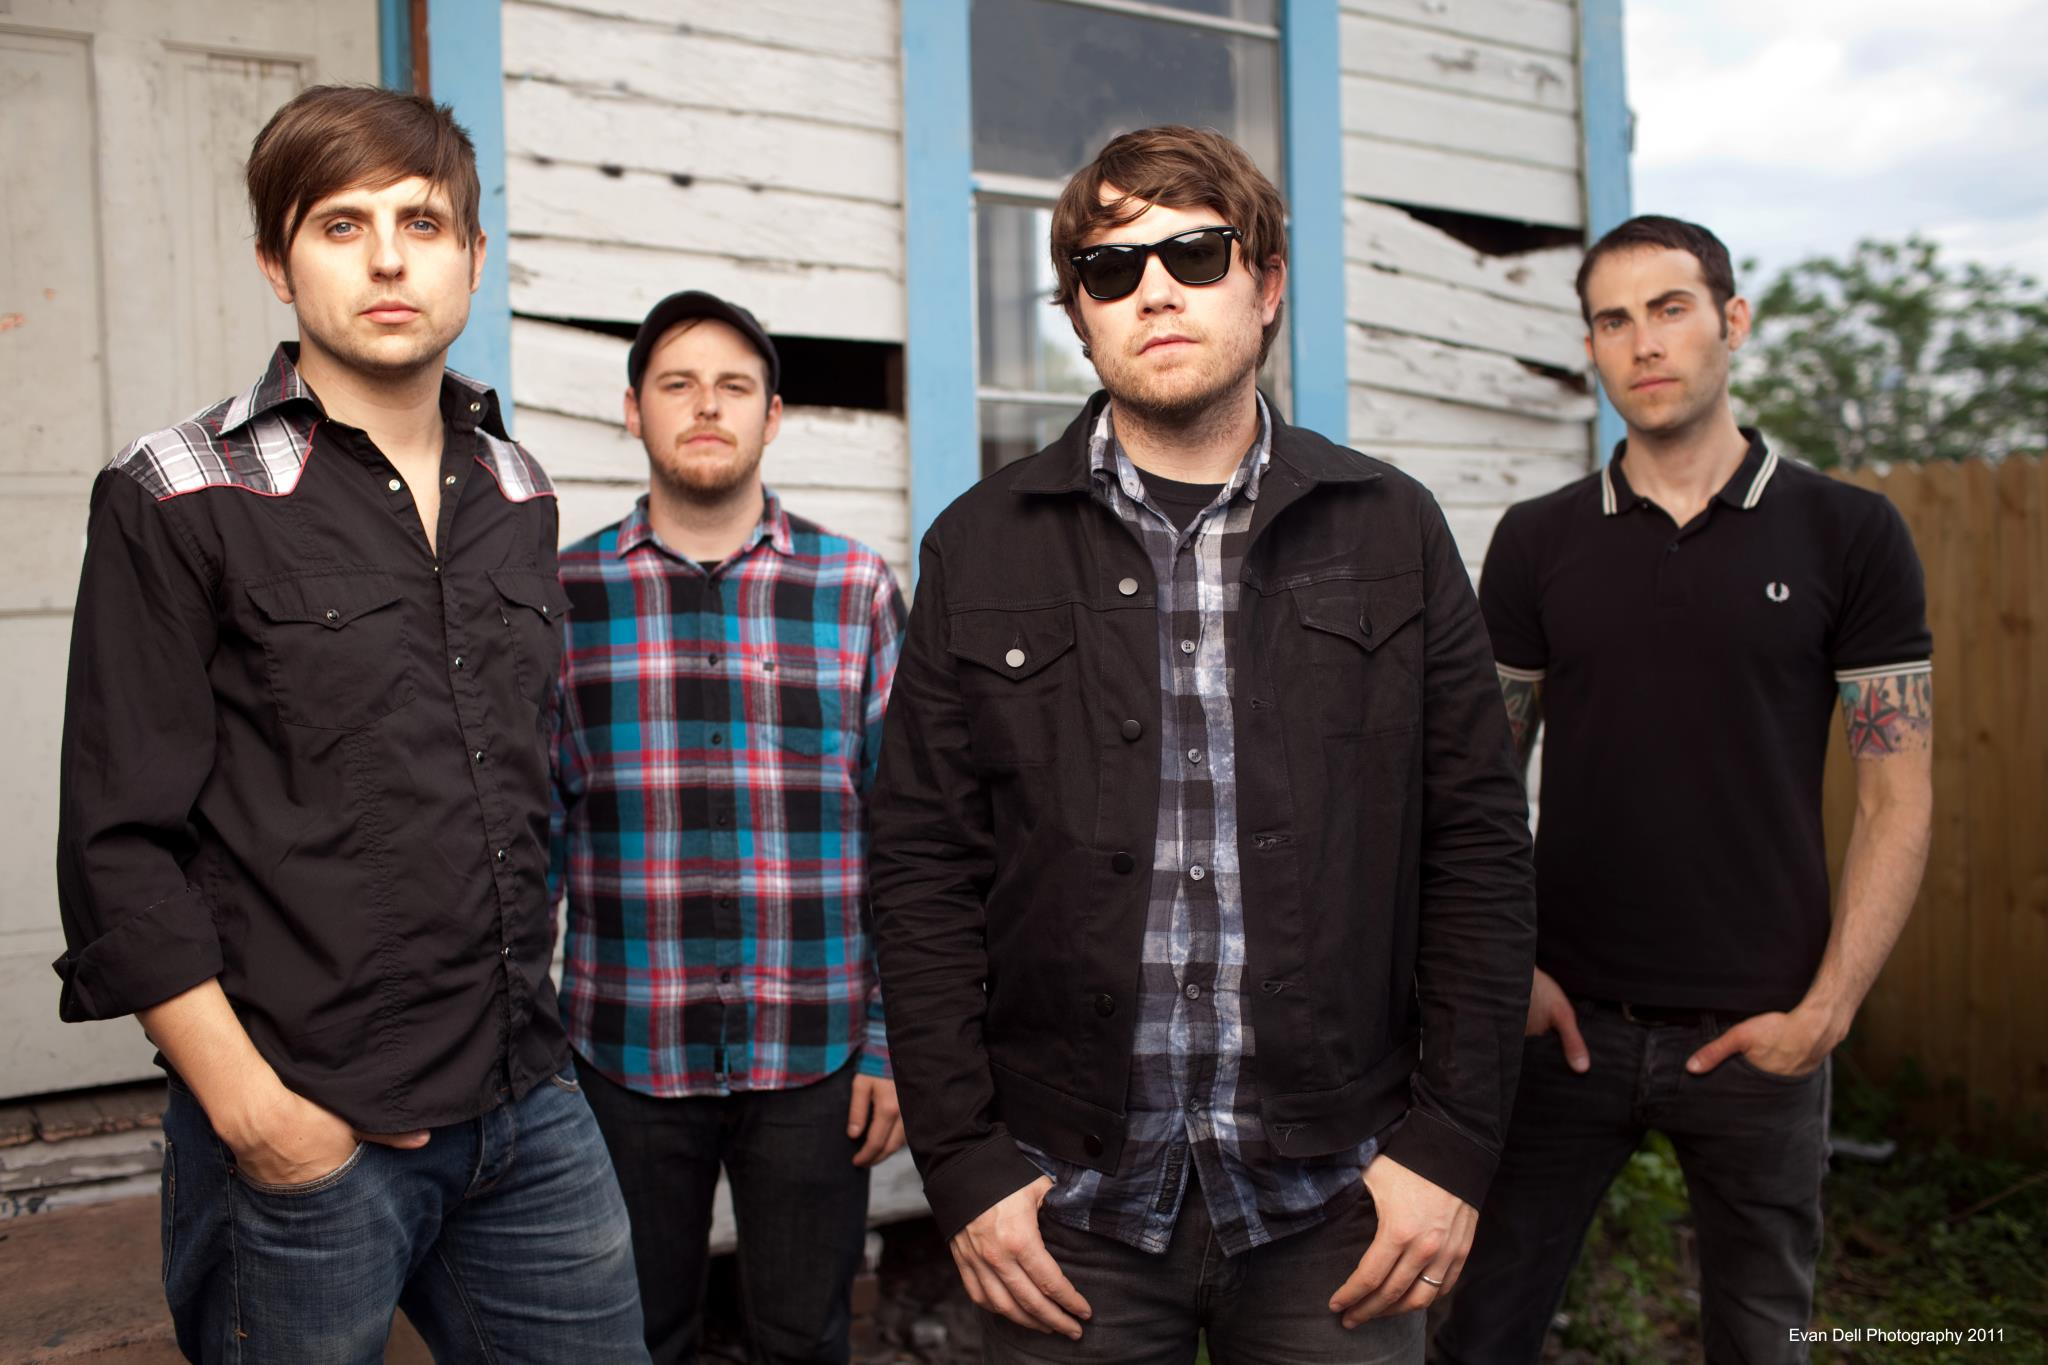 Iconic emo band Hawthorne Heights coming to the Gateway City | My San Antonio